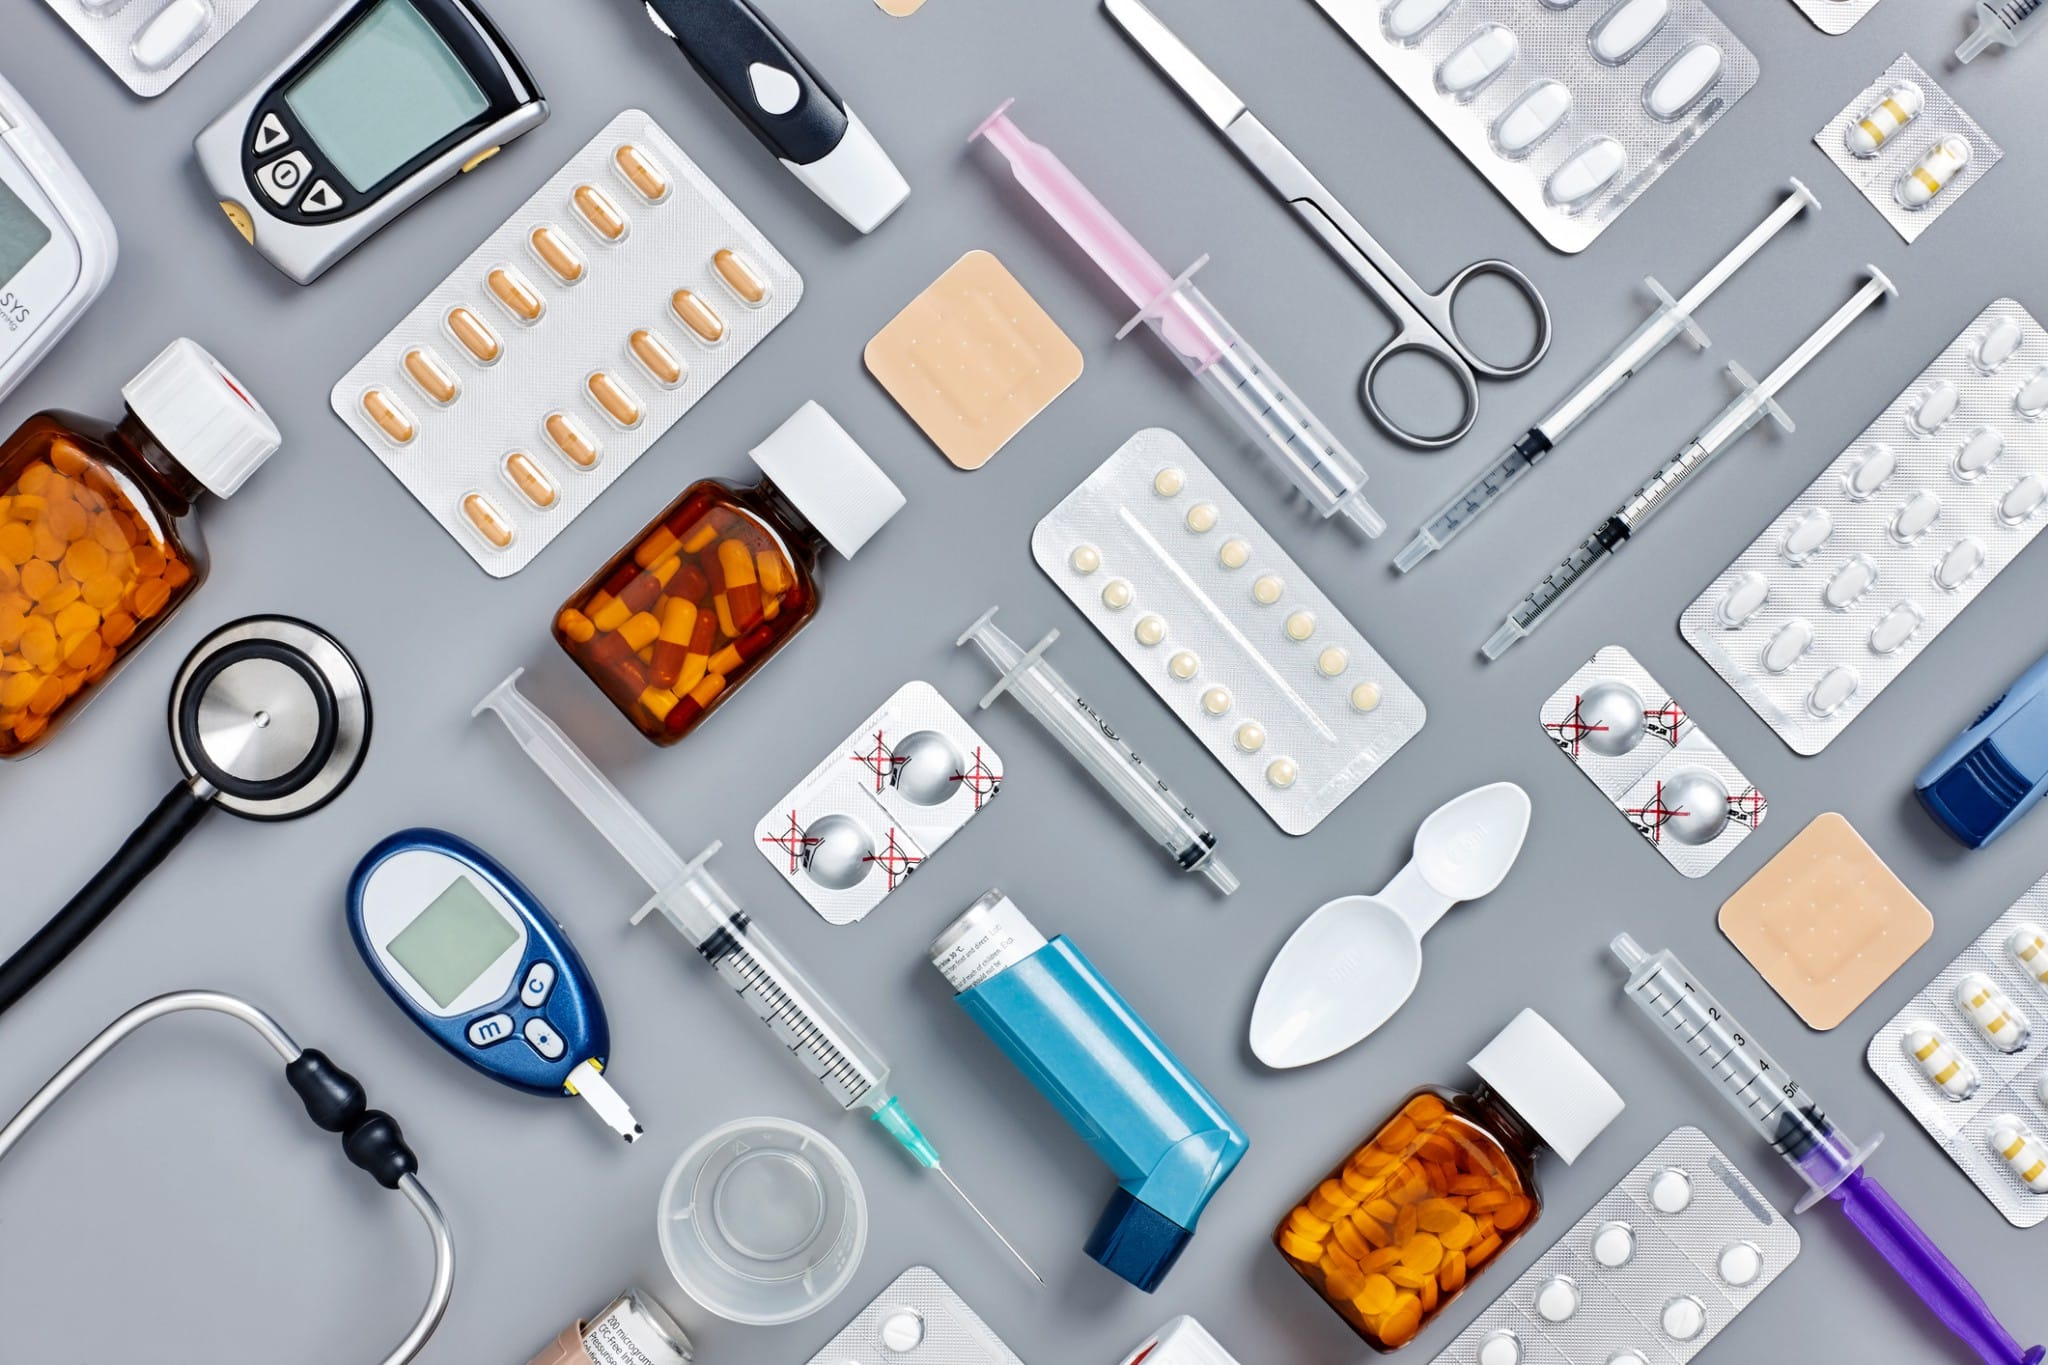 Medical supplies are visualized in an artful, patterned display.